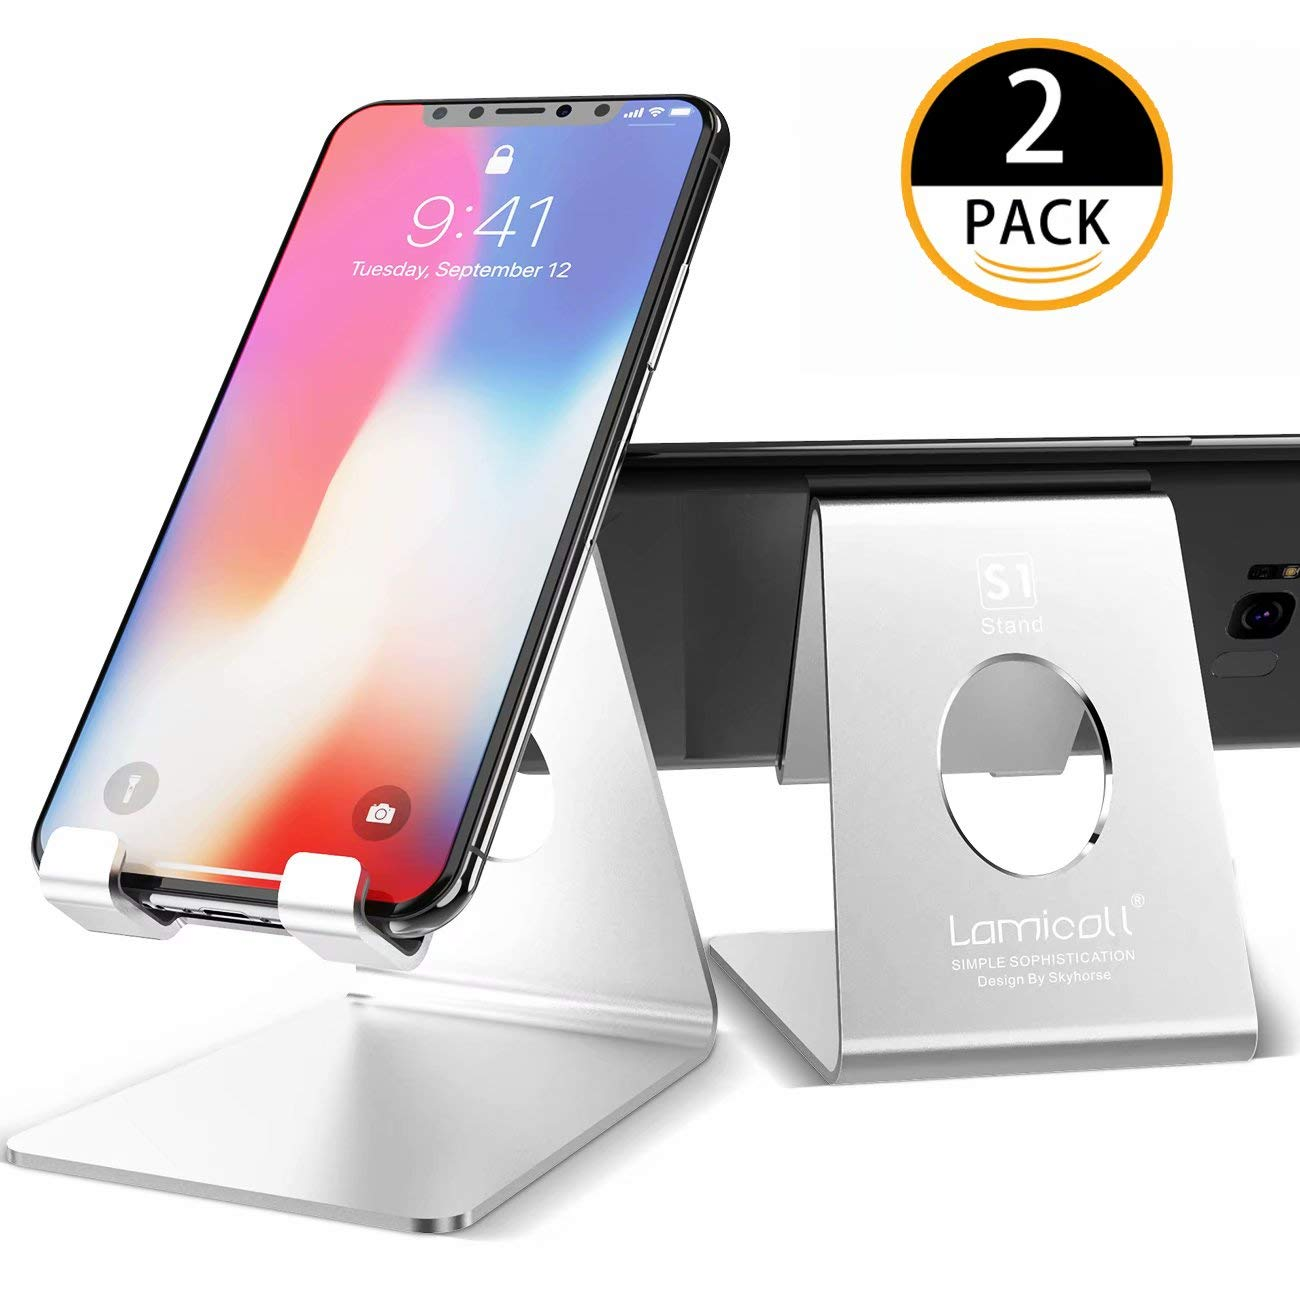 Cell Phone Stand, Lamicall Phone Stand : [2 Pack] Desktop Holder Cradle, Dock Compatible with Switch, All Android Smartphone, Phone 6 6s 7 8 X Plus 5 5s 5c, Universal Accessories Desk - Silver